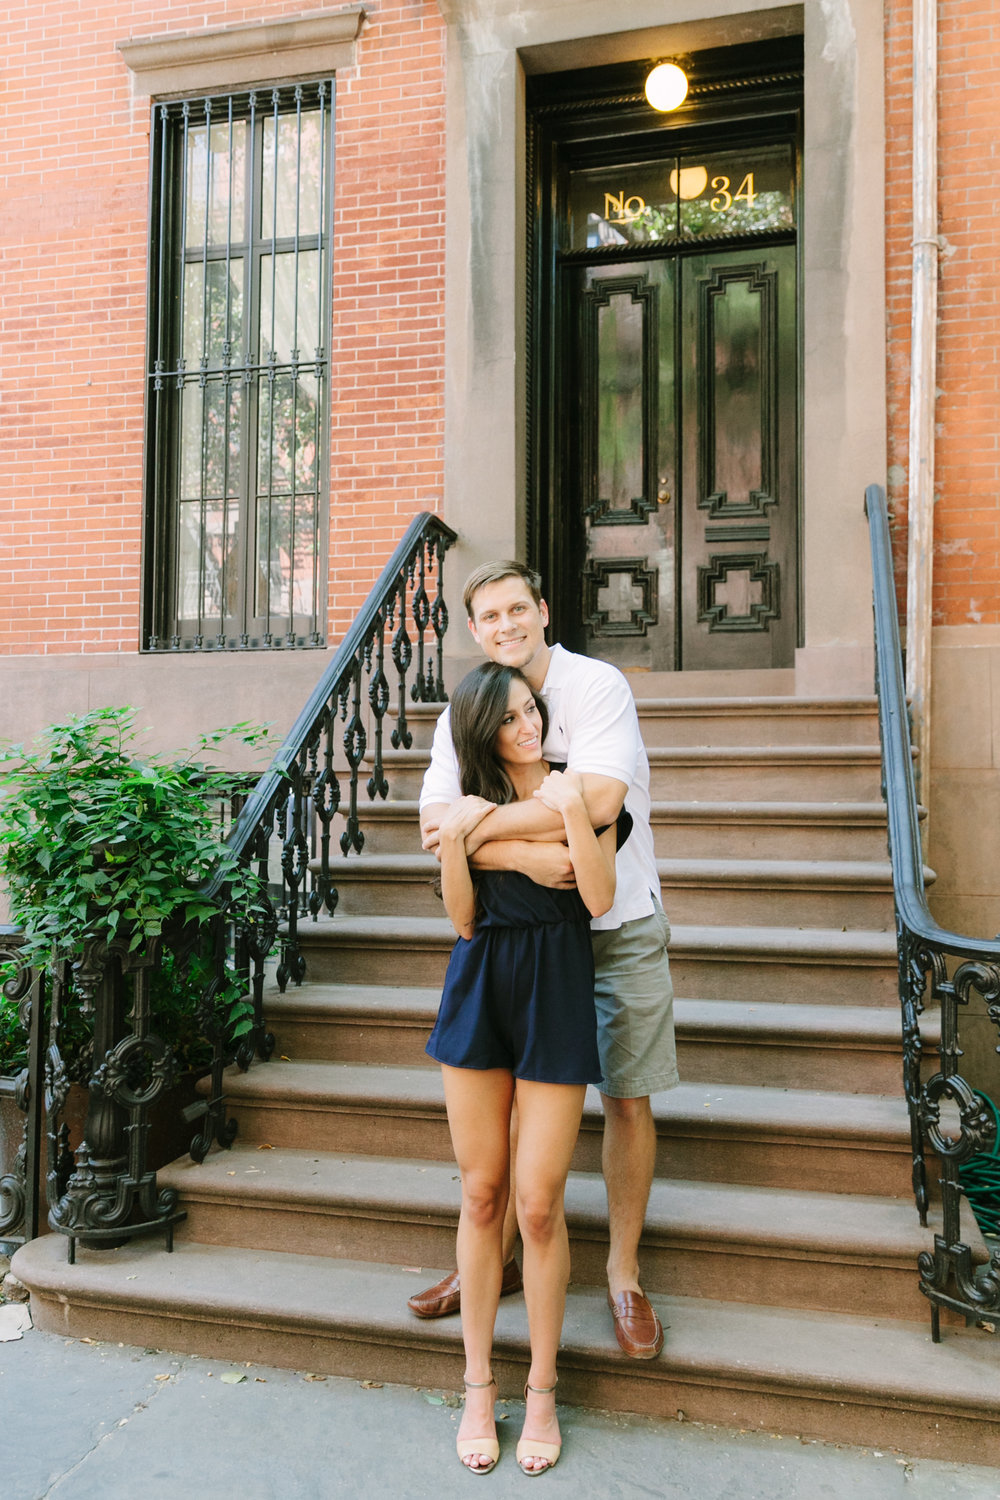 NYC-engagement-photos-by-Tanya-Isaeva-87.jpg